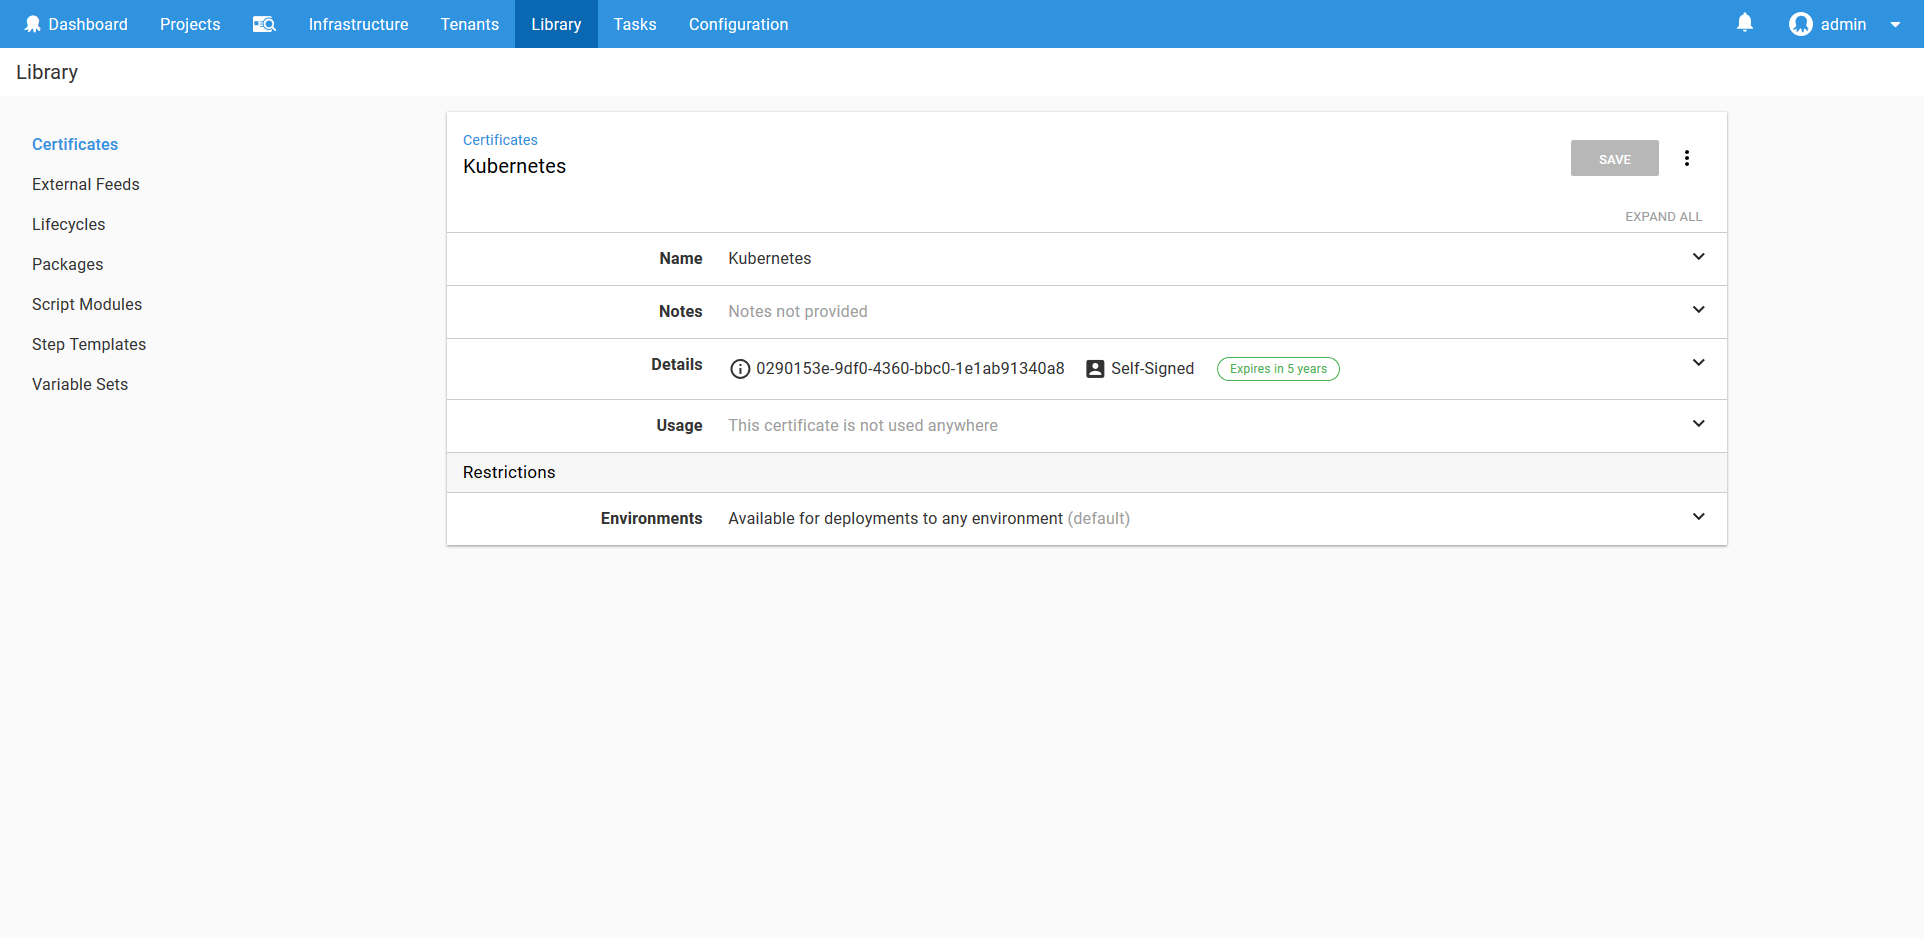 Deploying applications to Kubernetes with Octopus | Octopus Deploy